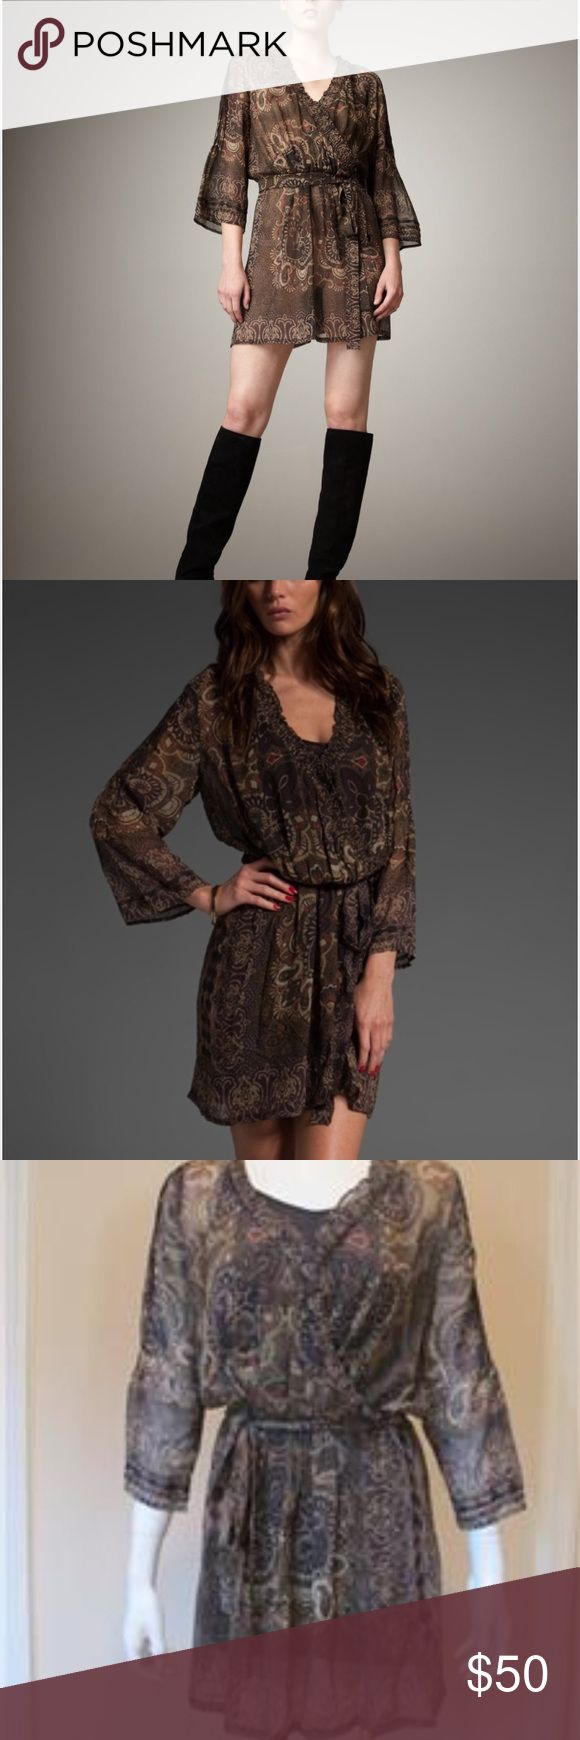 Joie Paisley Print Brown Sarika Dress Brown Paisley Joie Dress, super cute and very flattering! Perfect with boots or wear to work with flats. Worn 3x and dry cleaned once. Comes with brown cotton slip. Great condition! Joie Dresses Long Sleeve